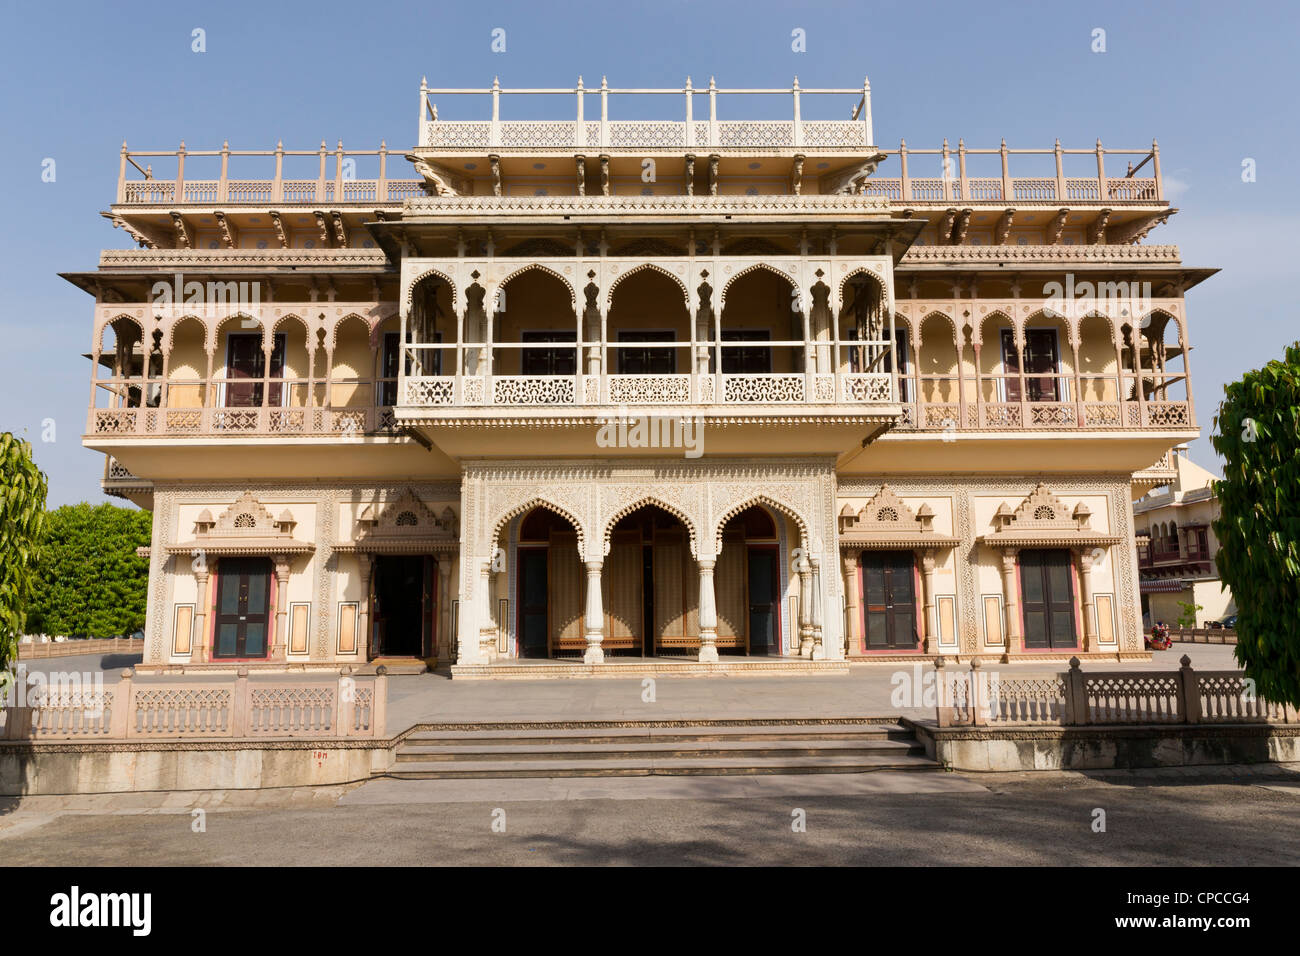 Mubarak Mahal, meaning the 'Auspicious Palace', was built with a fusion of  Islamic, Rajput and European - Stock Image